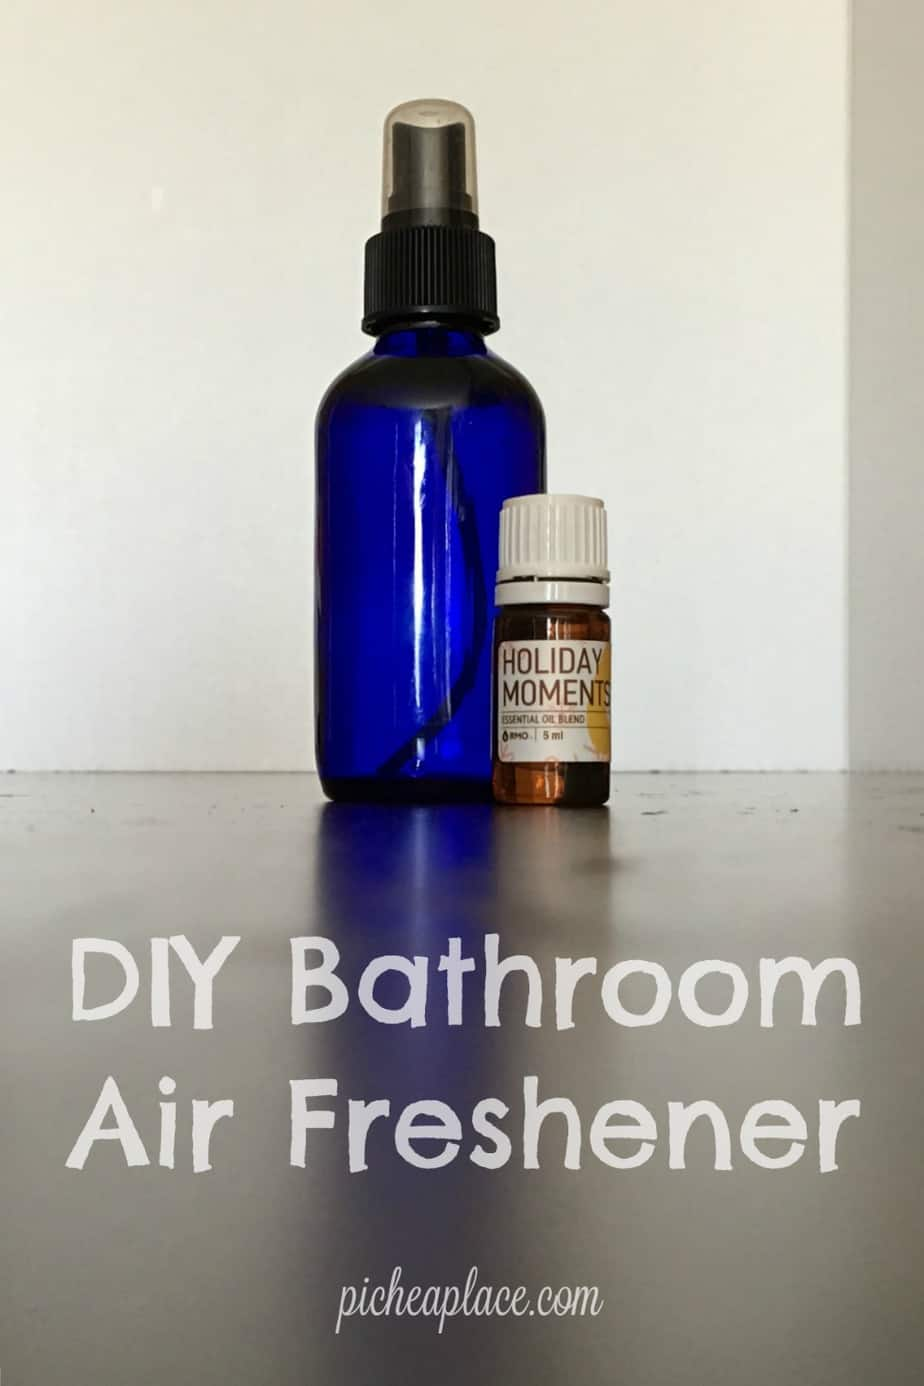 DIY Bathroom Air Freshener And Mini-Bathroom Makeover